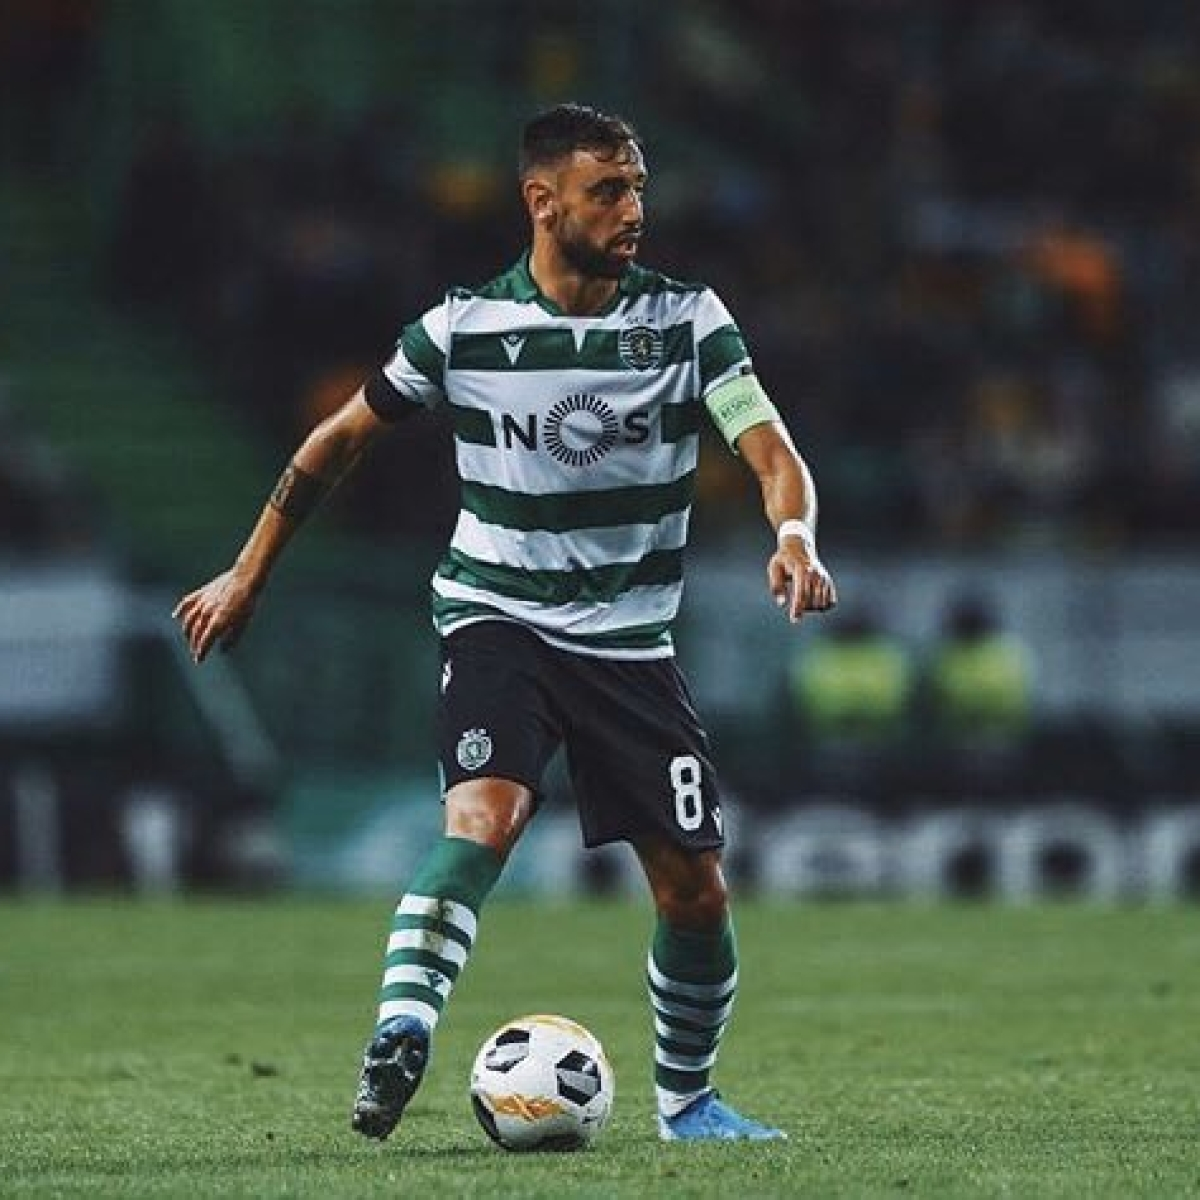 Manchester United confirms deal with Sporting Lisbon to sign Bruno Fernandes